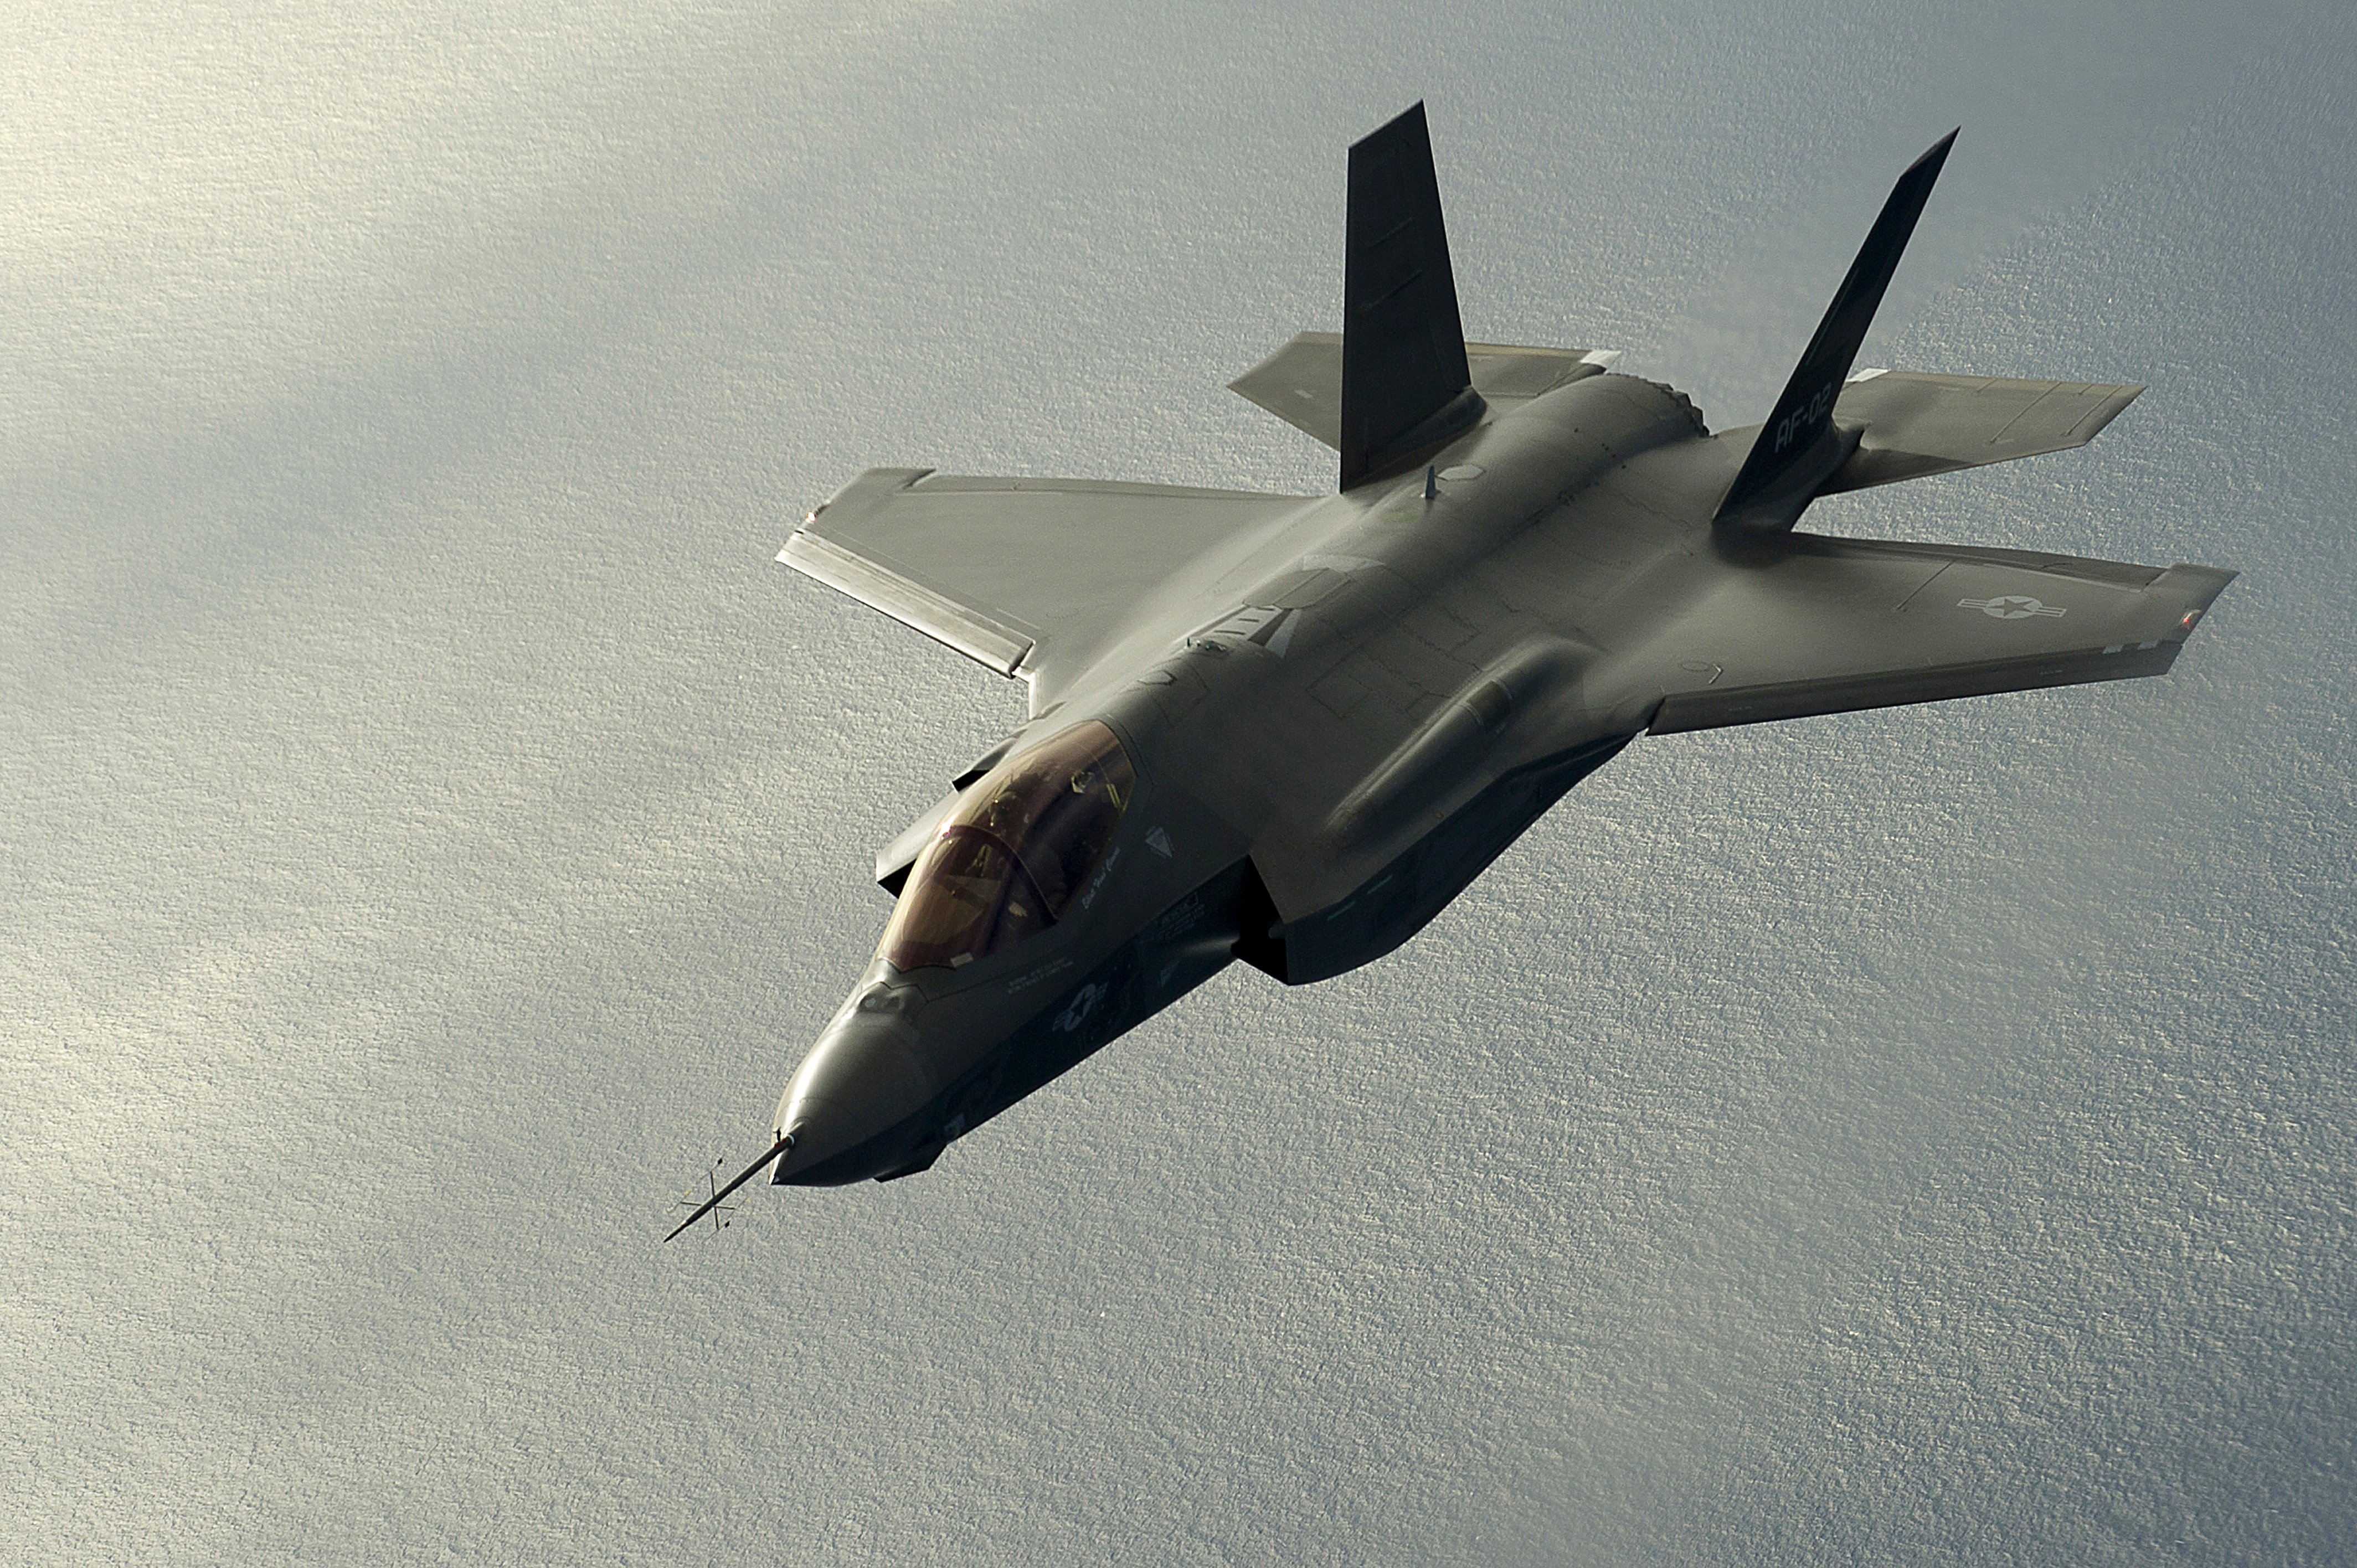 UK's delayed decision on F-35 purchase may be too little